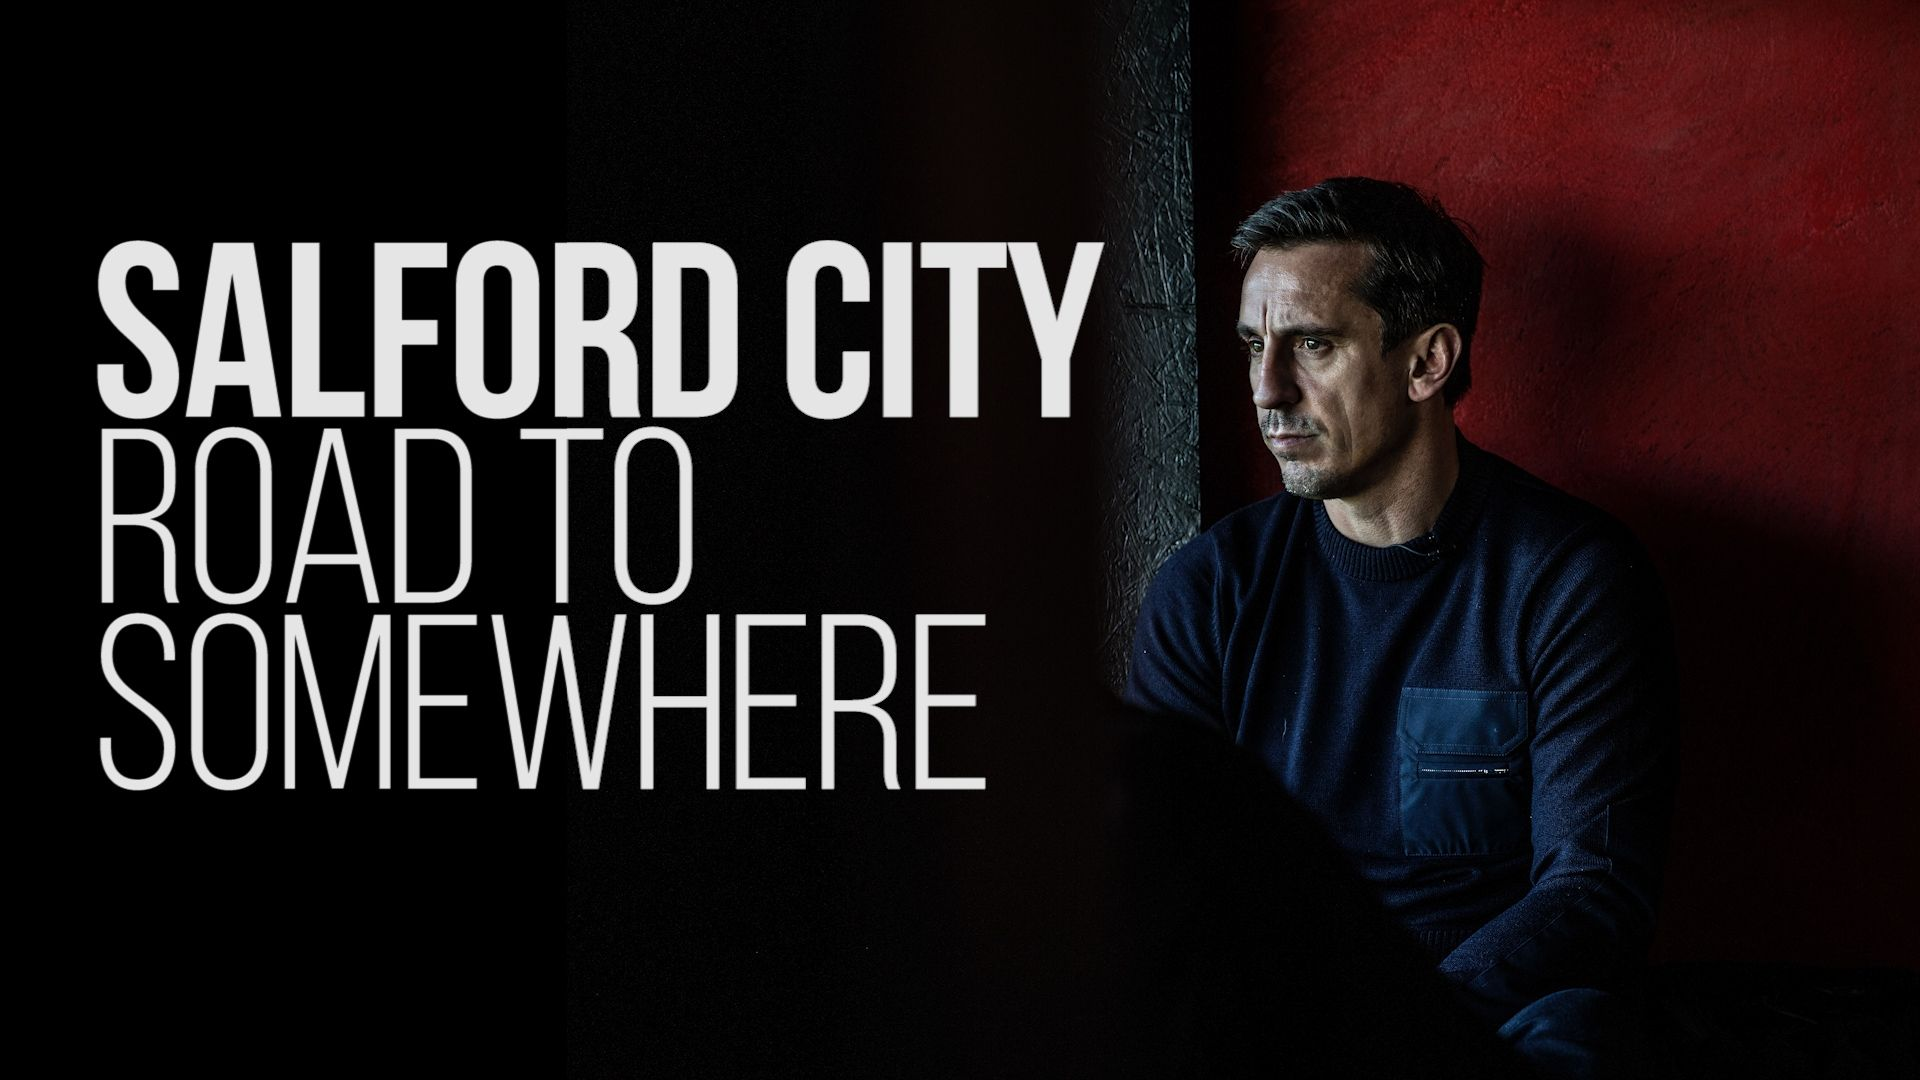 Neville & Scholes: Dreaming big with Salford City